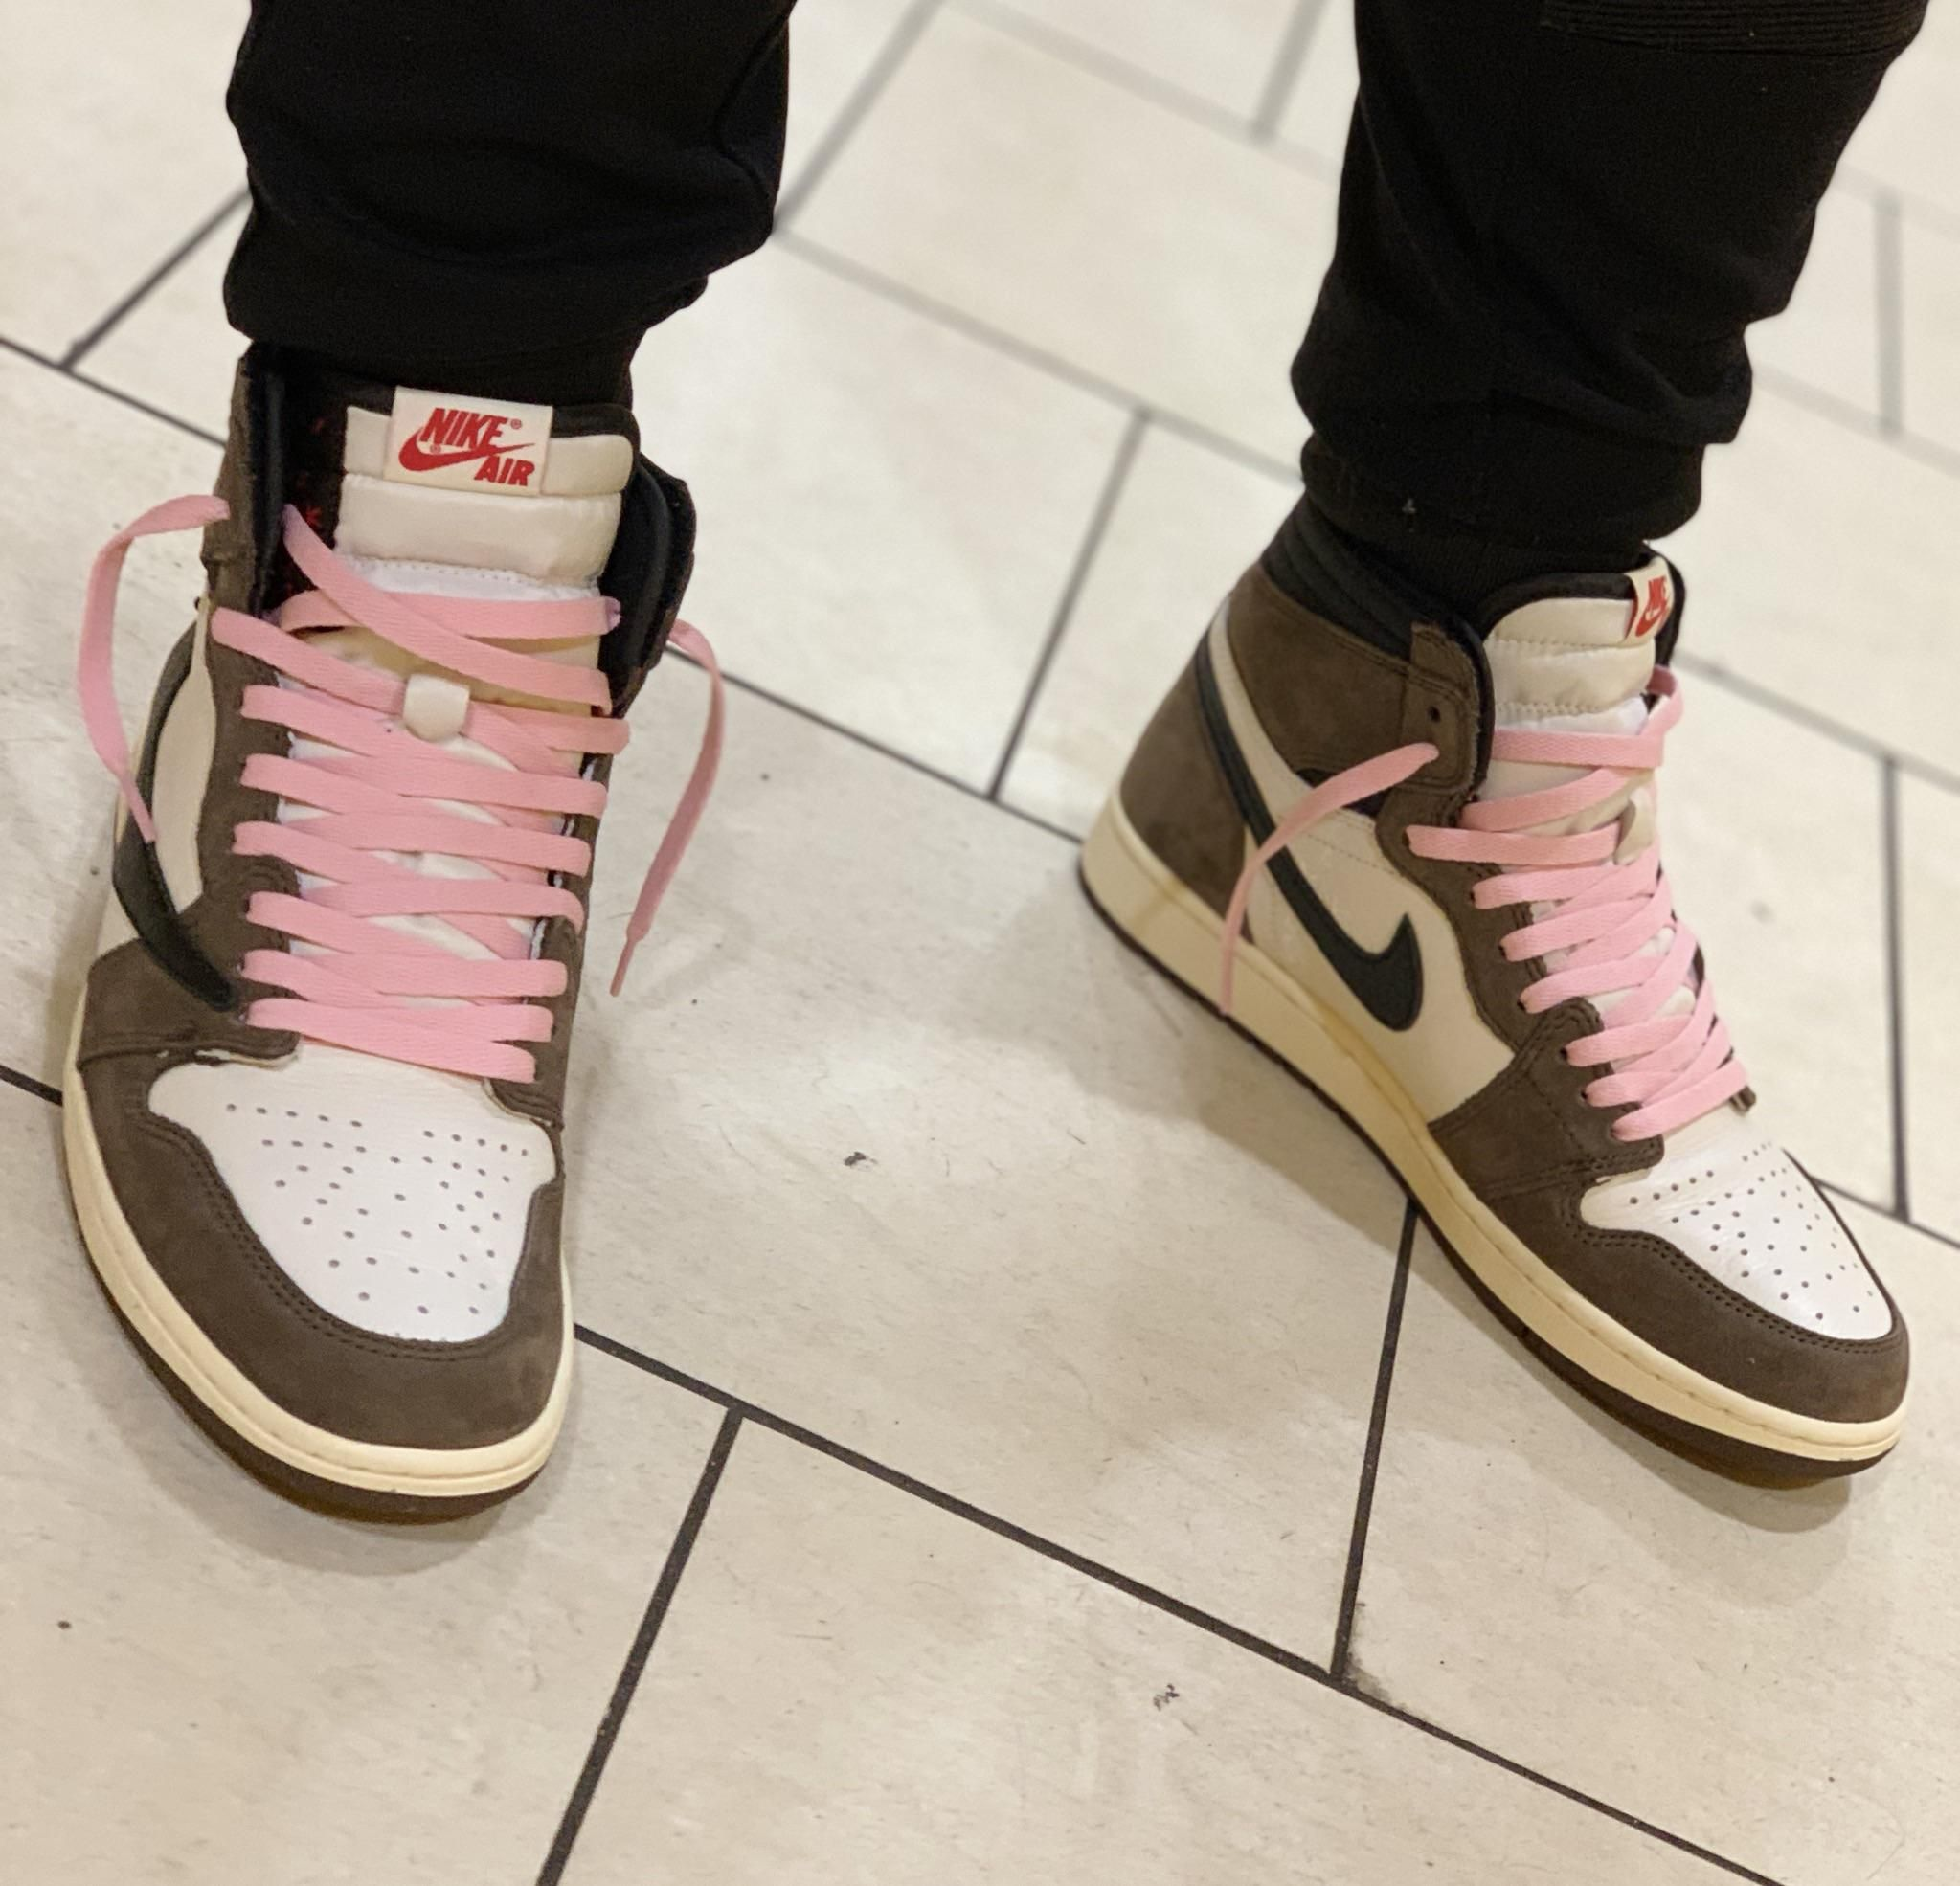 Where To Buy Shoe Laces For Nike Travis Scott Cactus Jack Air